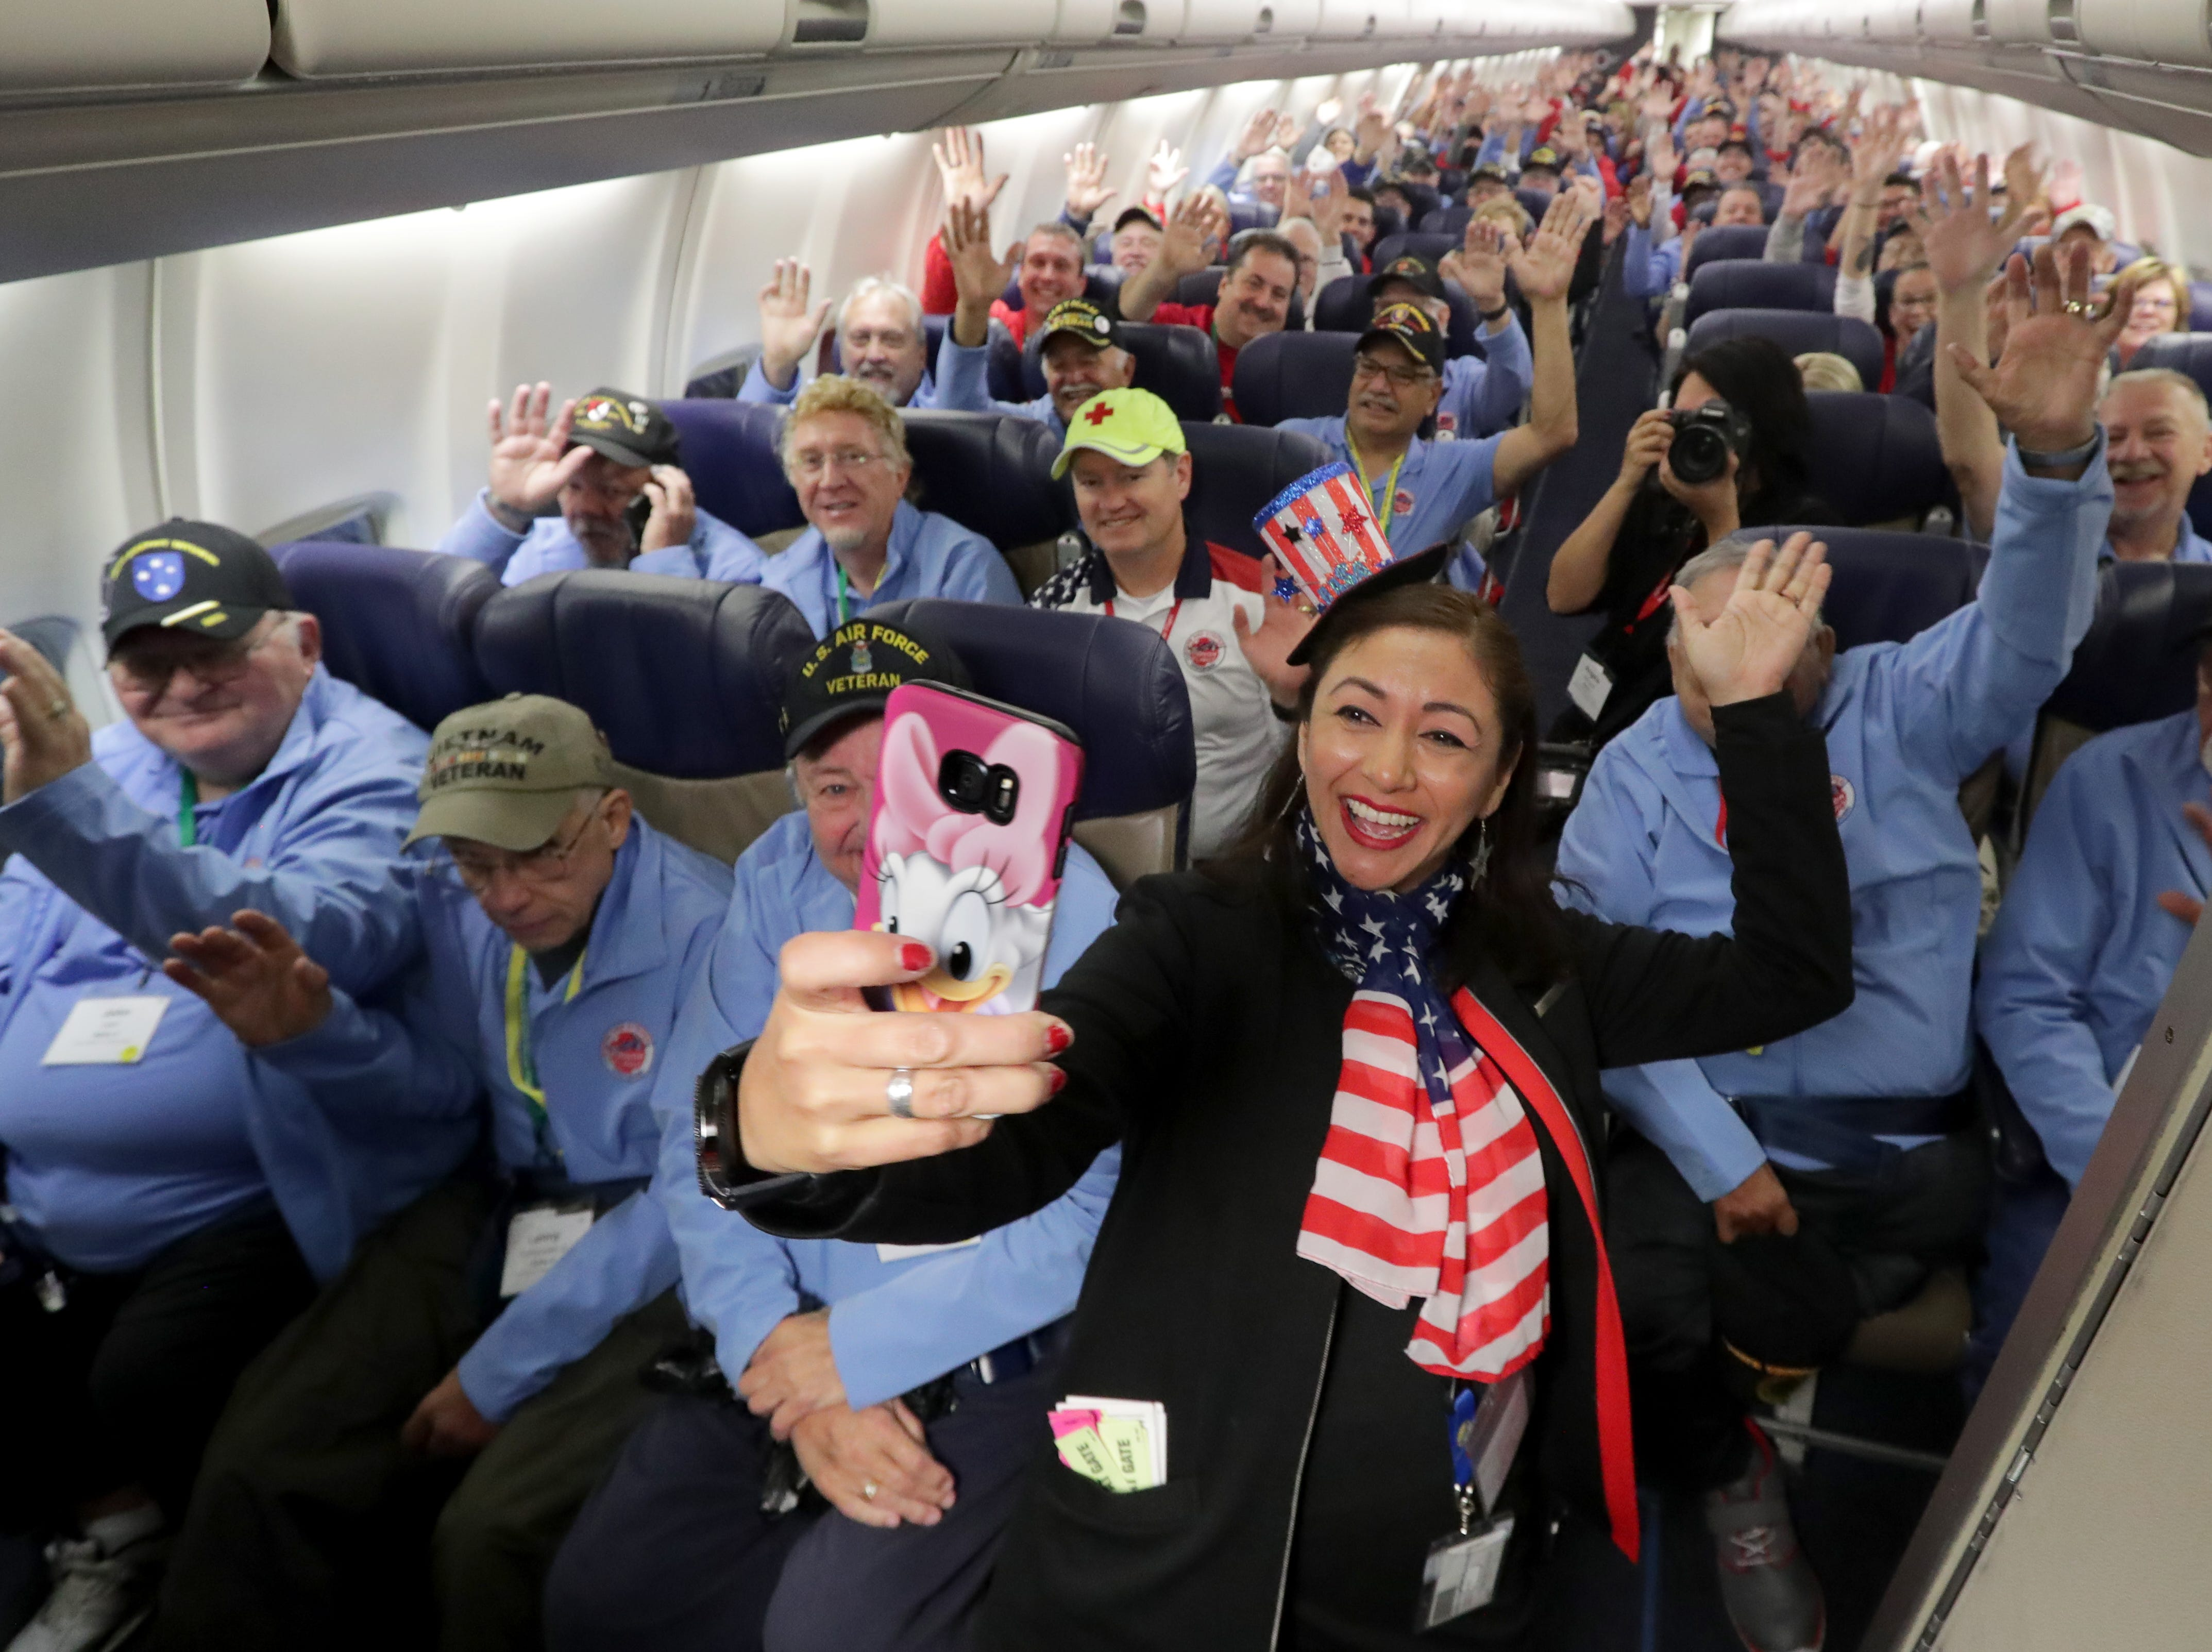 Southwest Airlines operations agent Daisy Rosas takes a selfie shortly before the plane departs in Milwaukee.